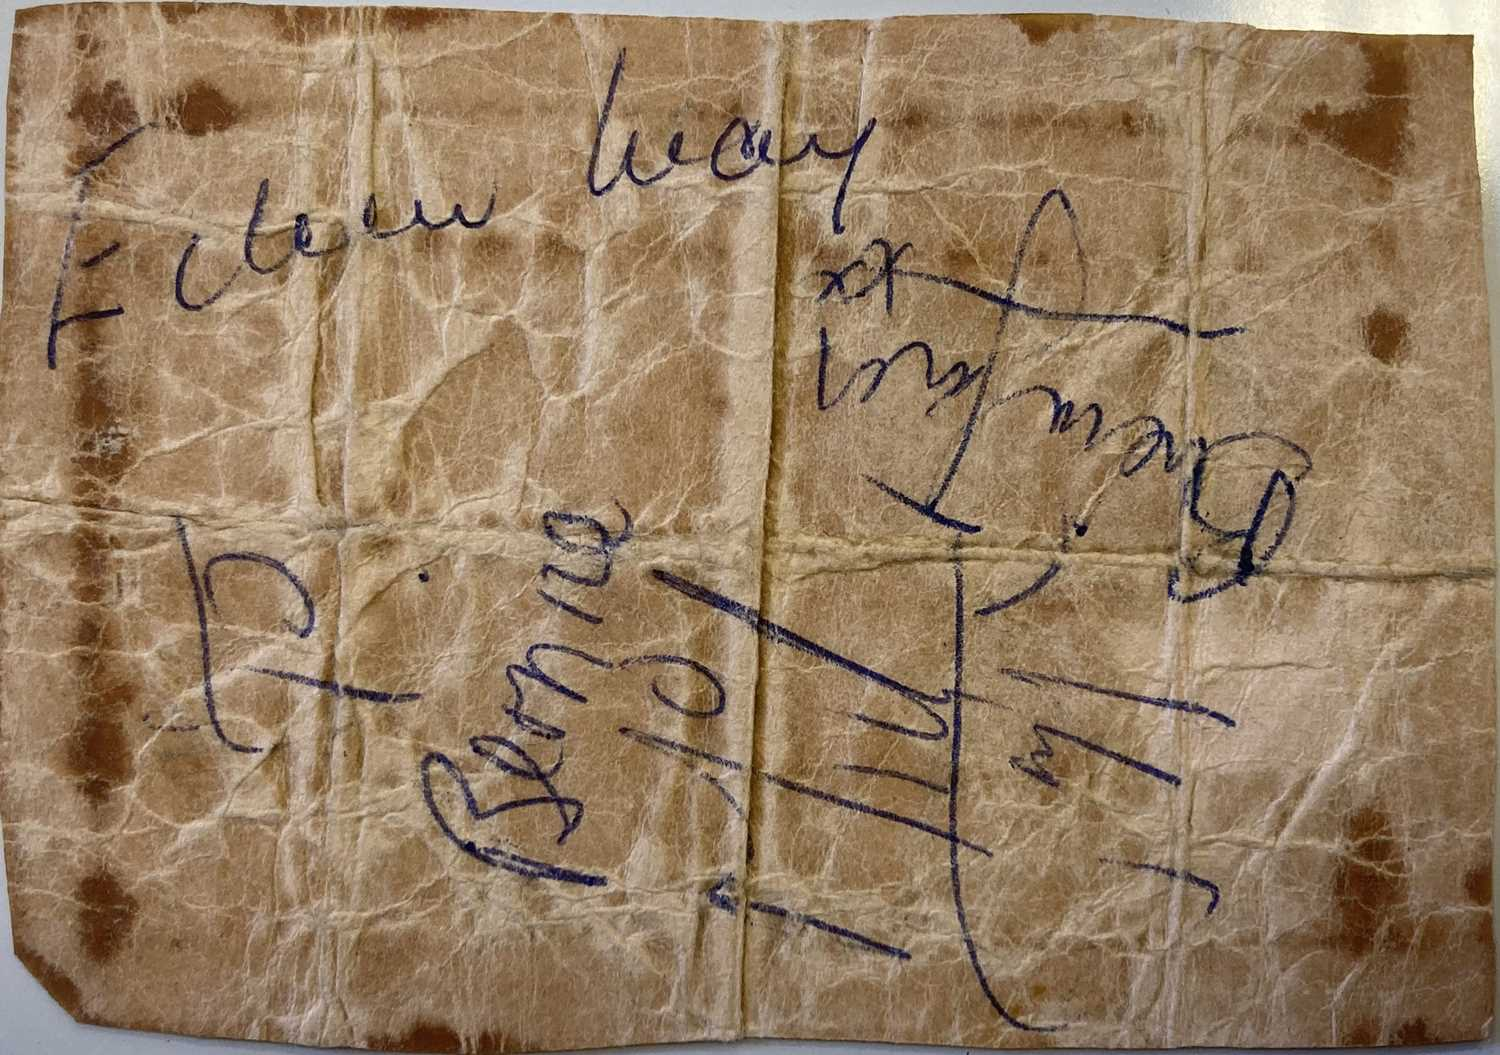 ROLLING STONES - SIGNED PAGE,